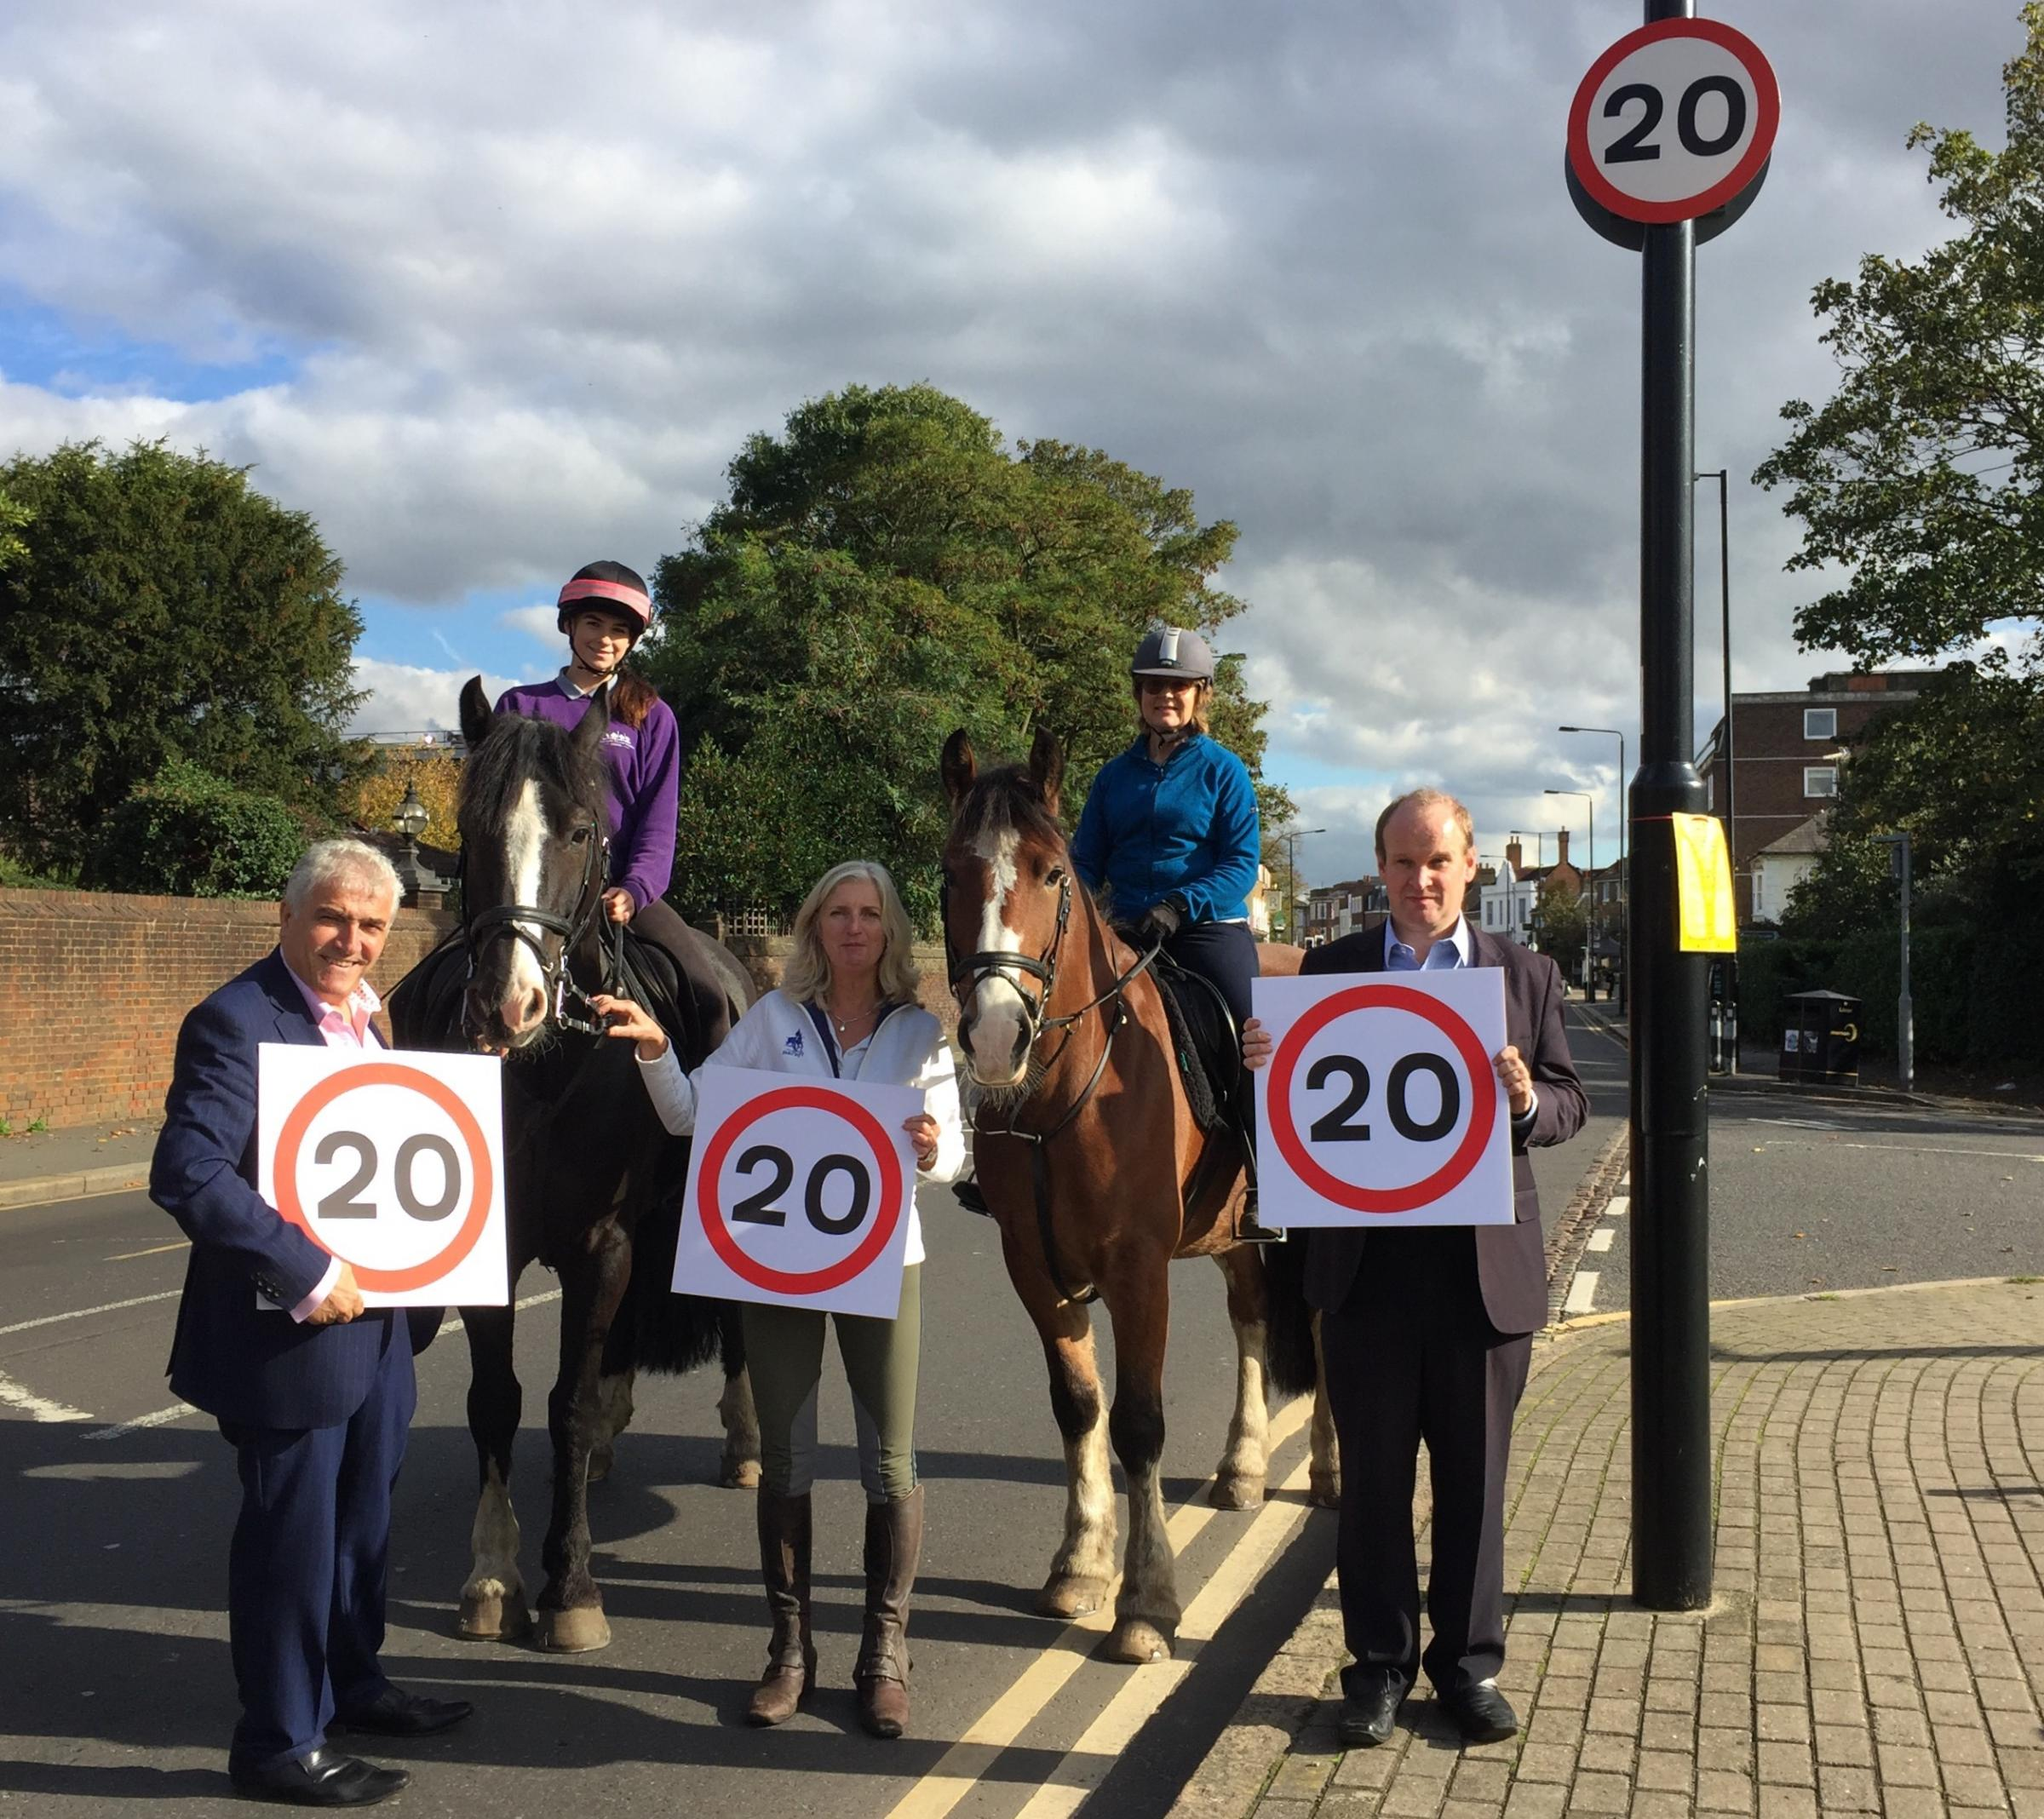 Busy high street becomes 20 miles per hour zone